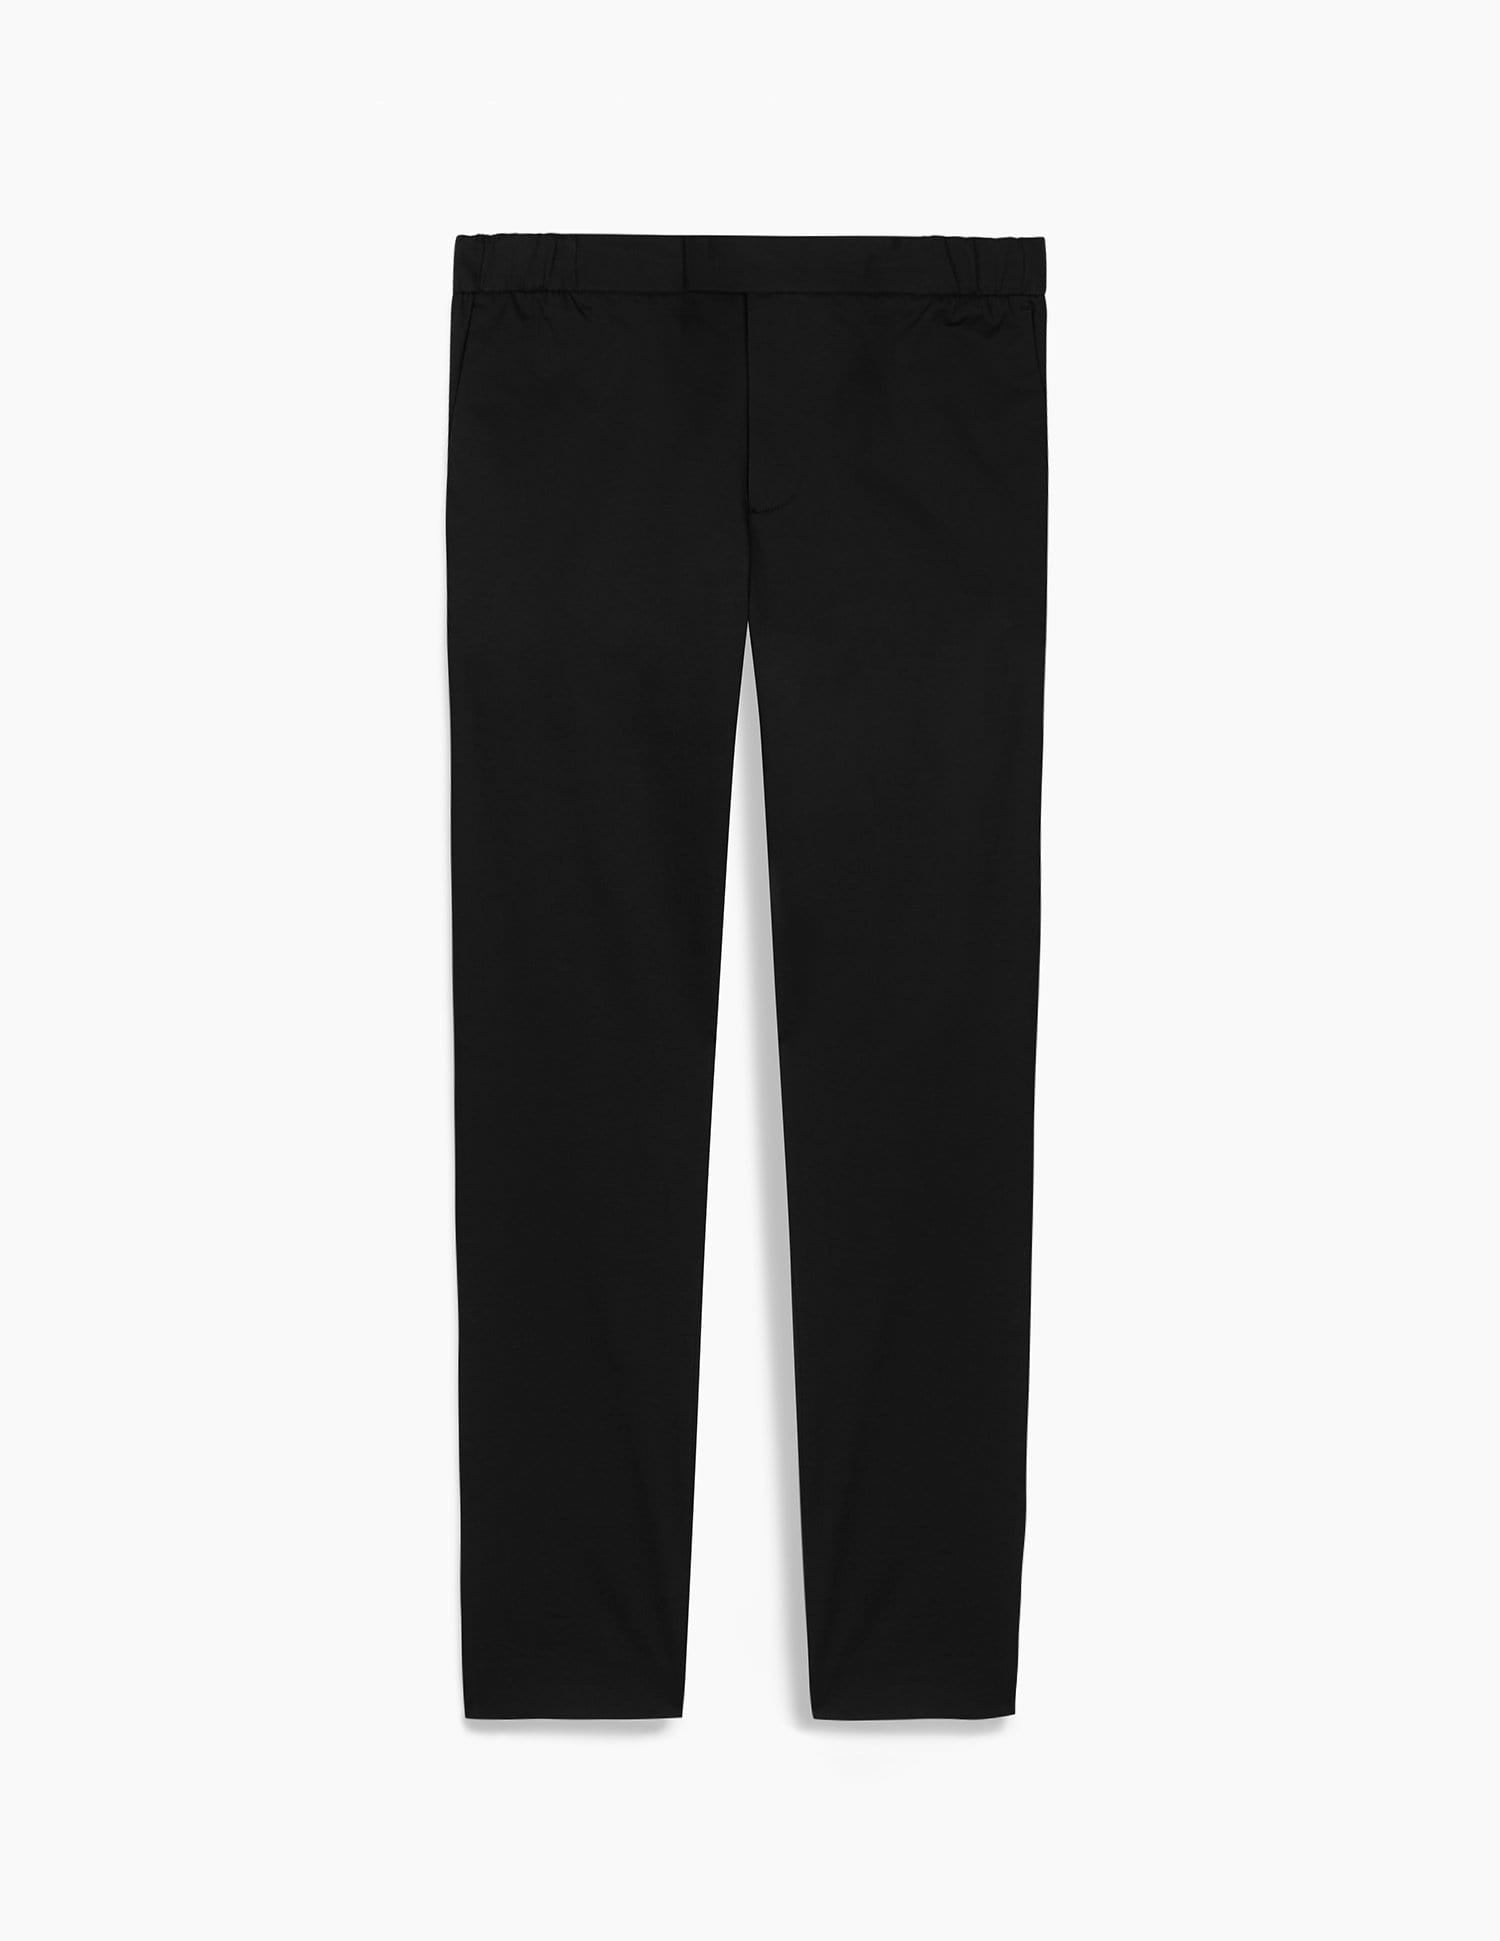 The 24 Trouser Heavyweight || Black | Heavyweight Edition